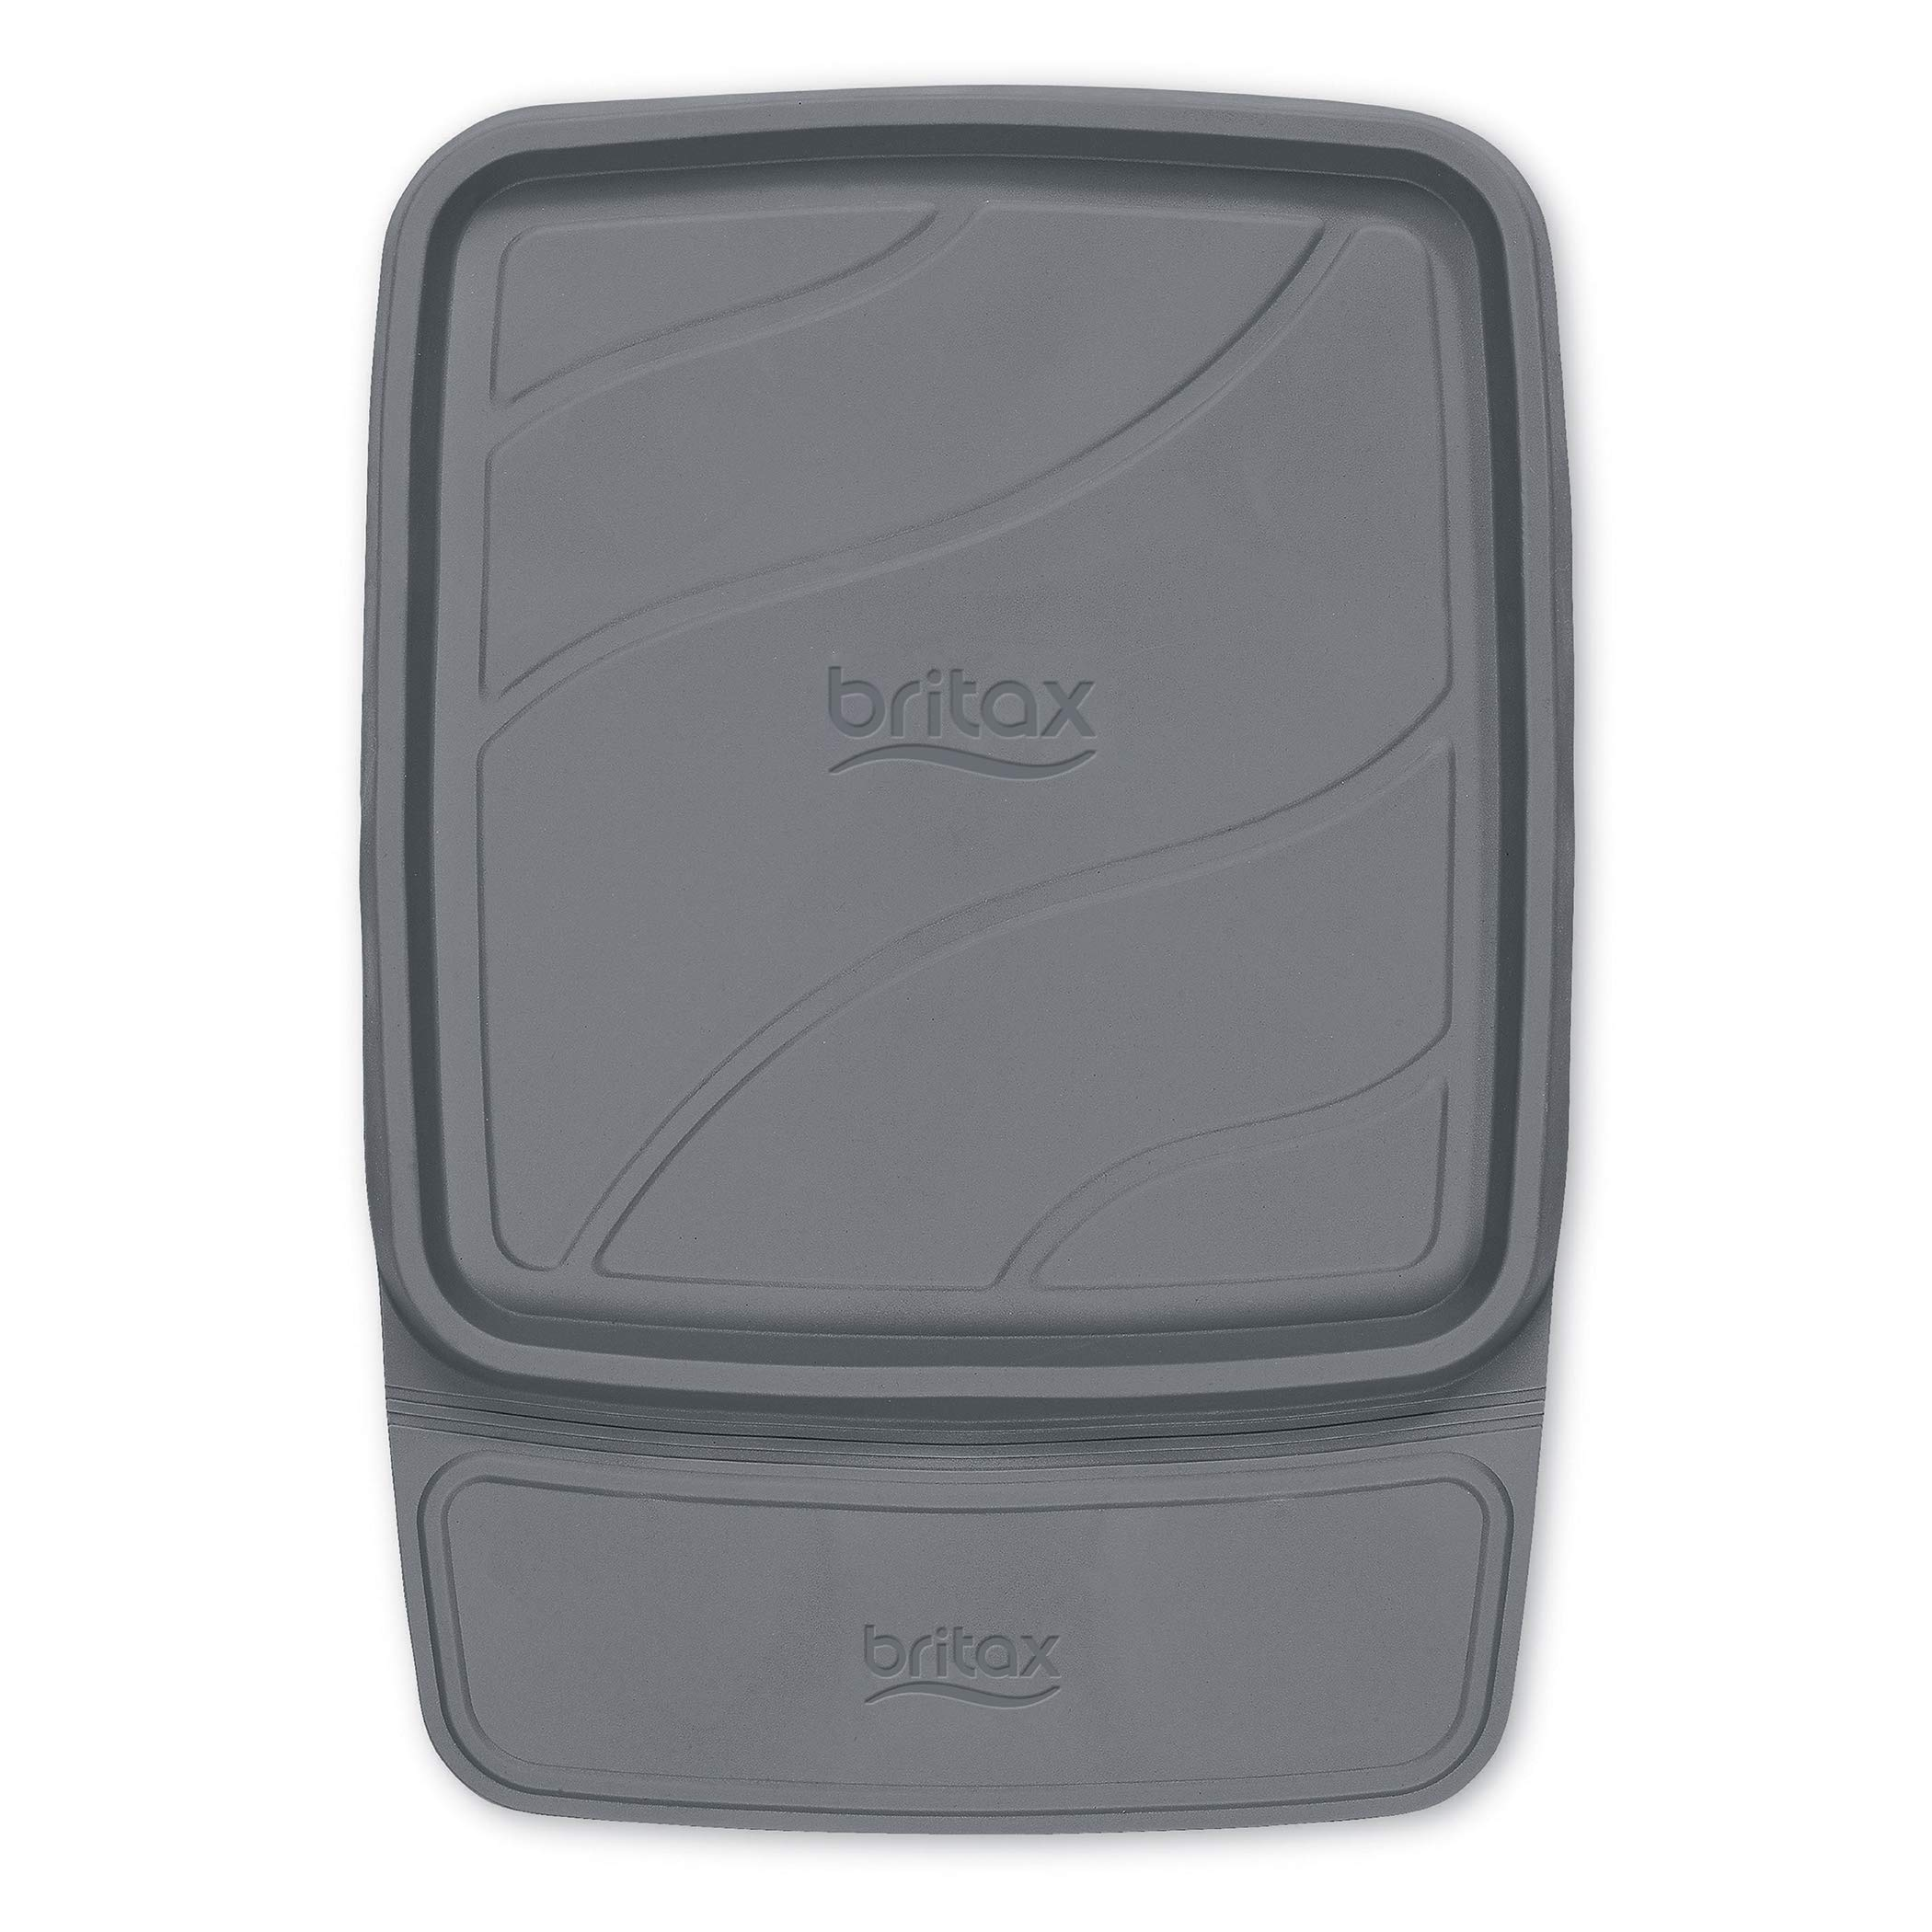 Britax Vehicle Seat Protector   Crash Tested + No Slip Grip + Waterproof Easy to Clean + Raised Edges Trap Spills and Debris